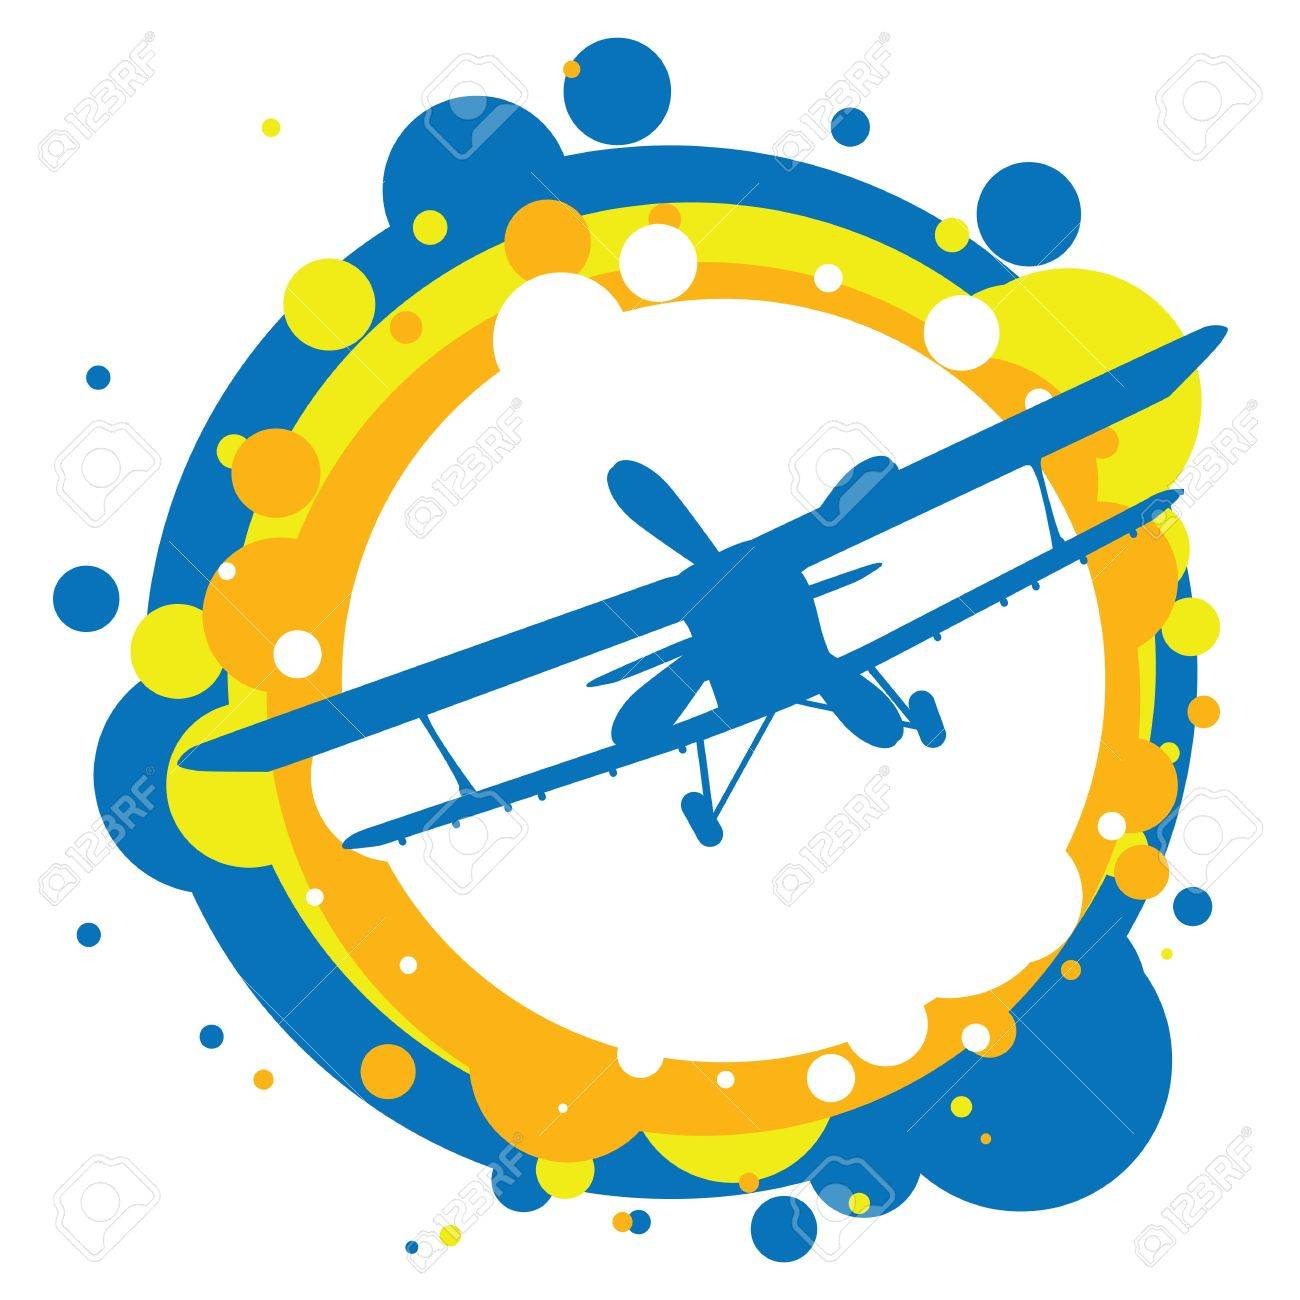 aircraft flying in the sky - 12980760